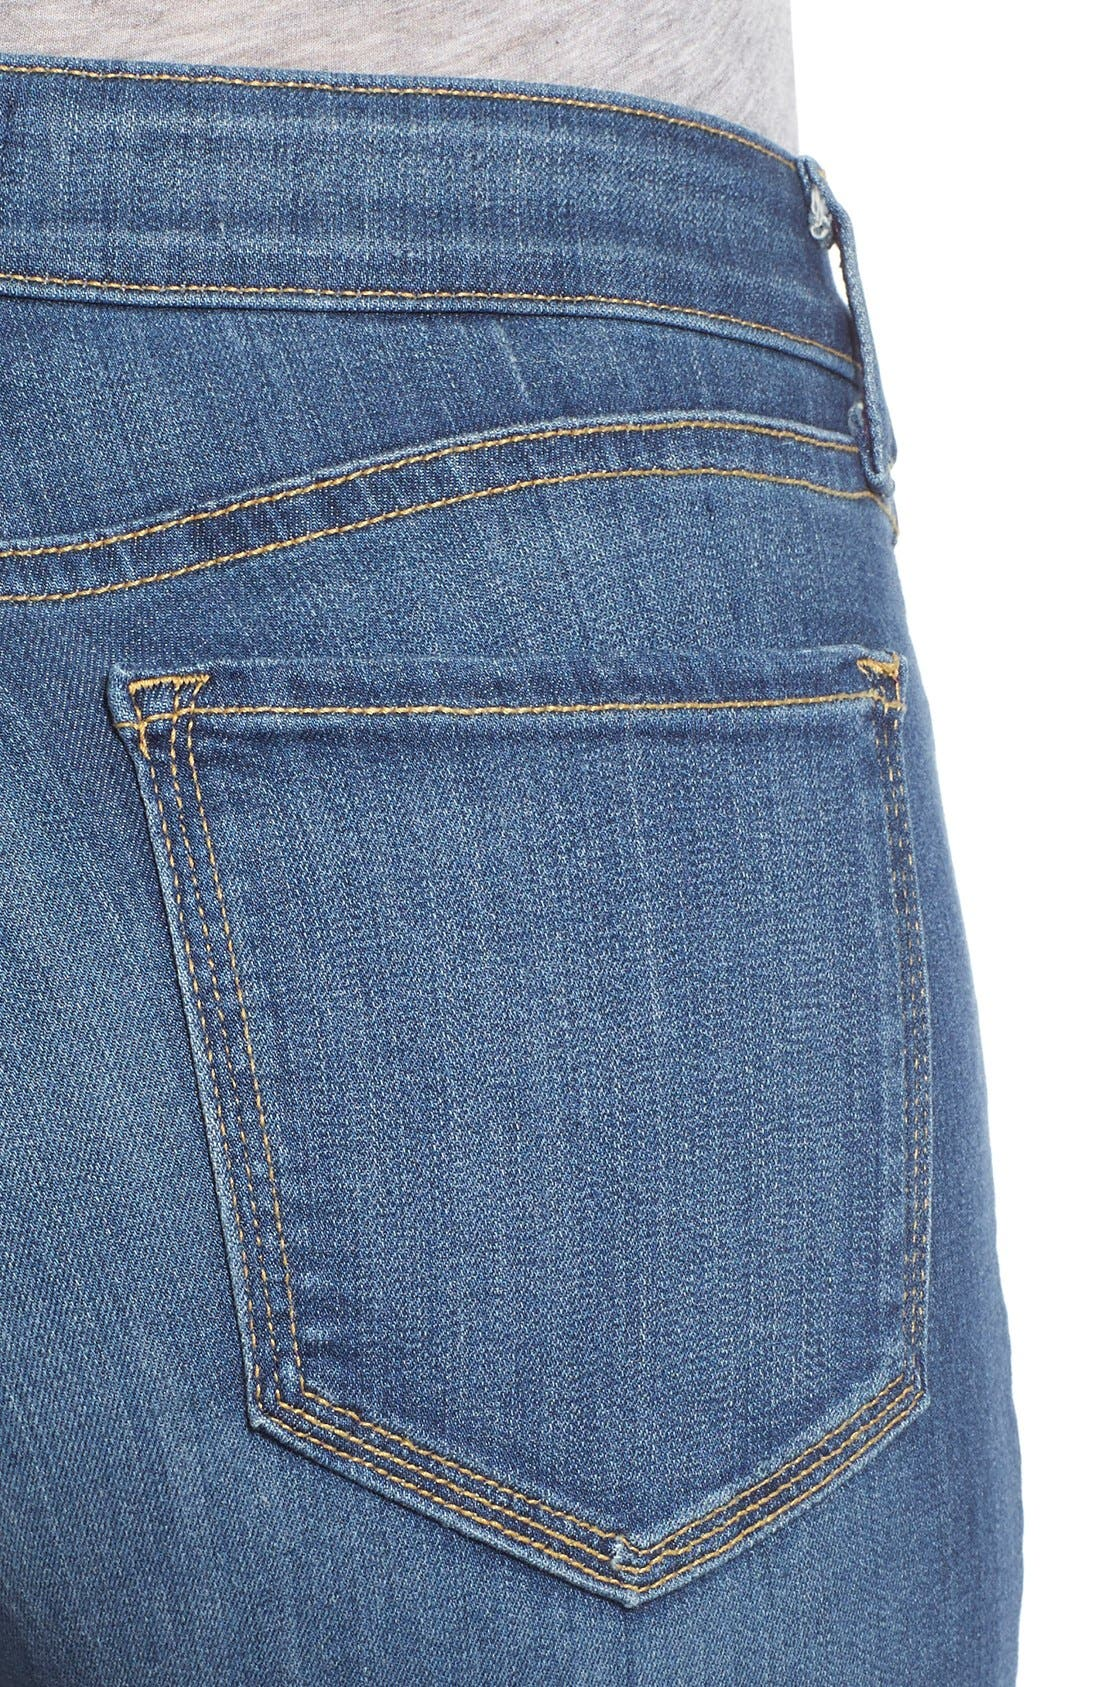 'Marilyn' Stretch Straight Leg Jeans,                             Alternate thumbnail 4, color,                             Anderson